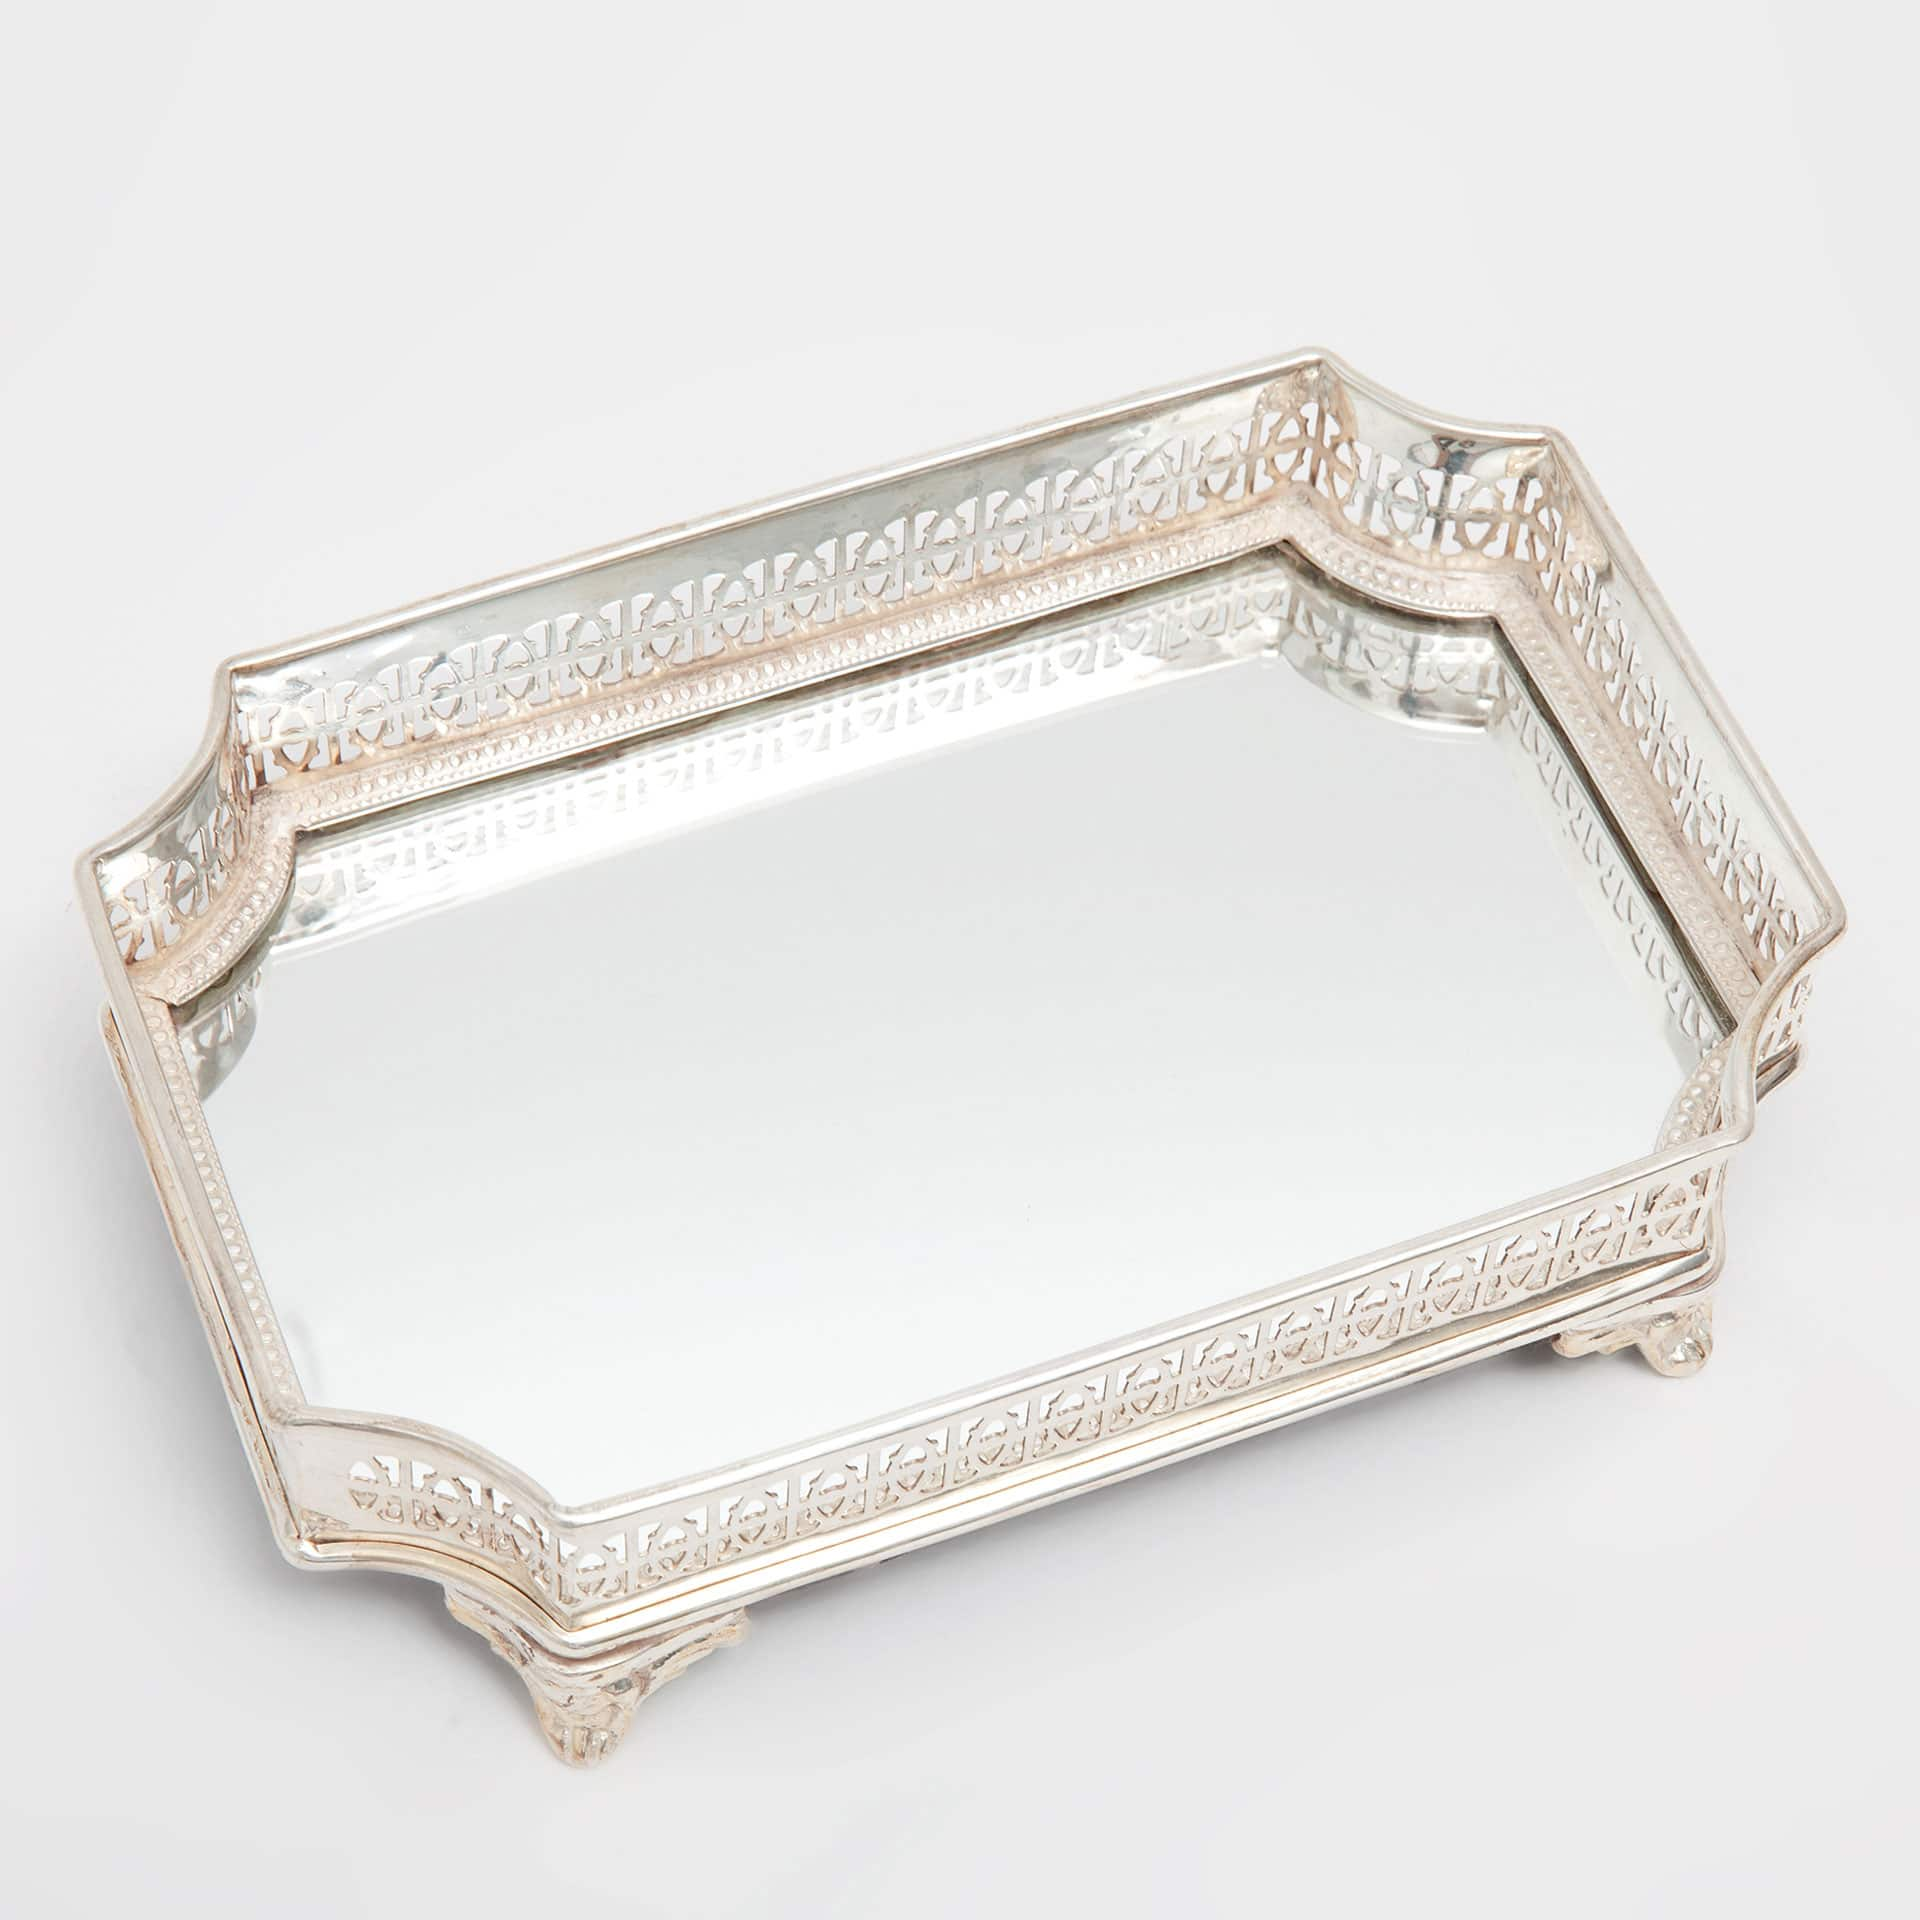 image 3 of the product metallic decorative tray with mirror base - Decorative Tray